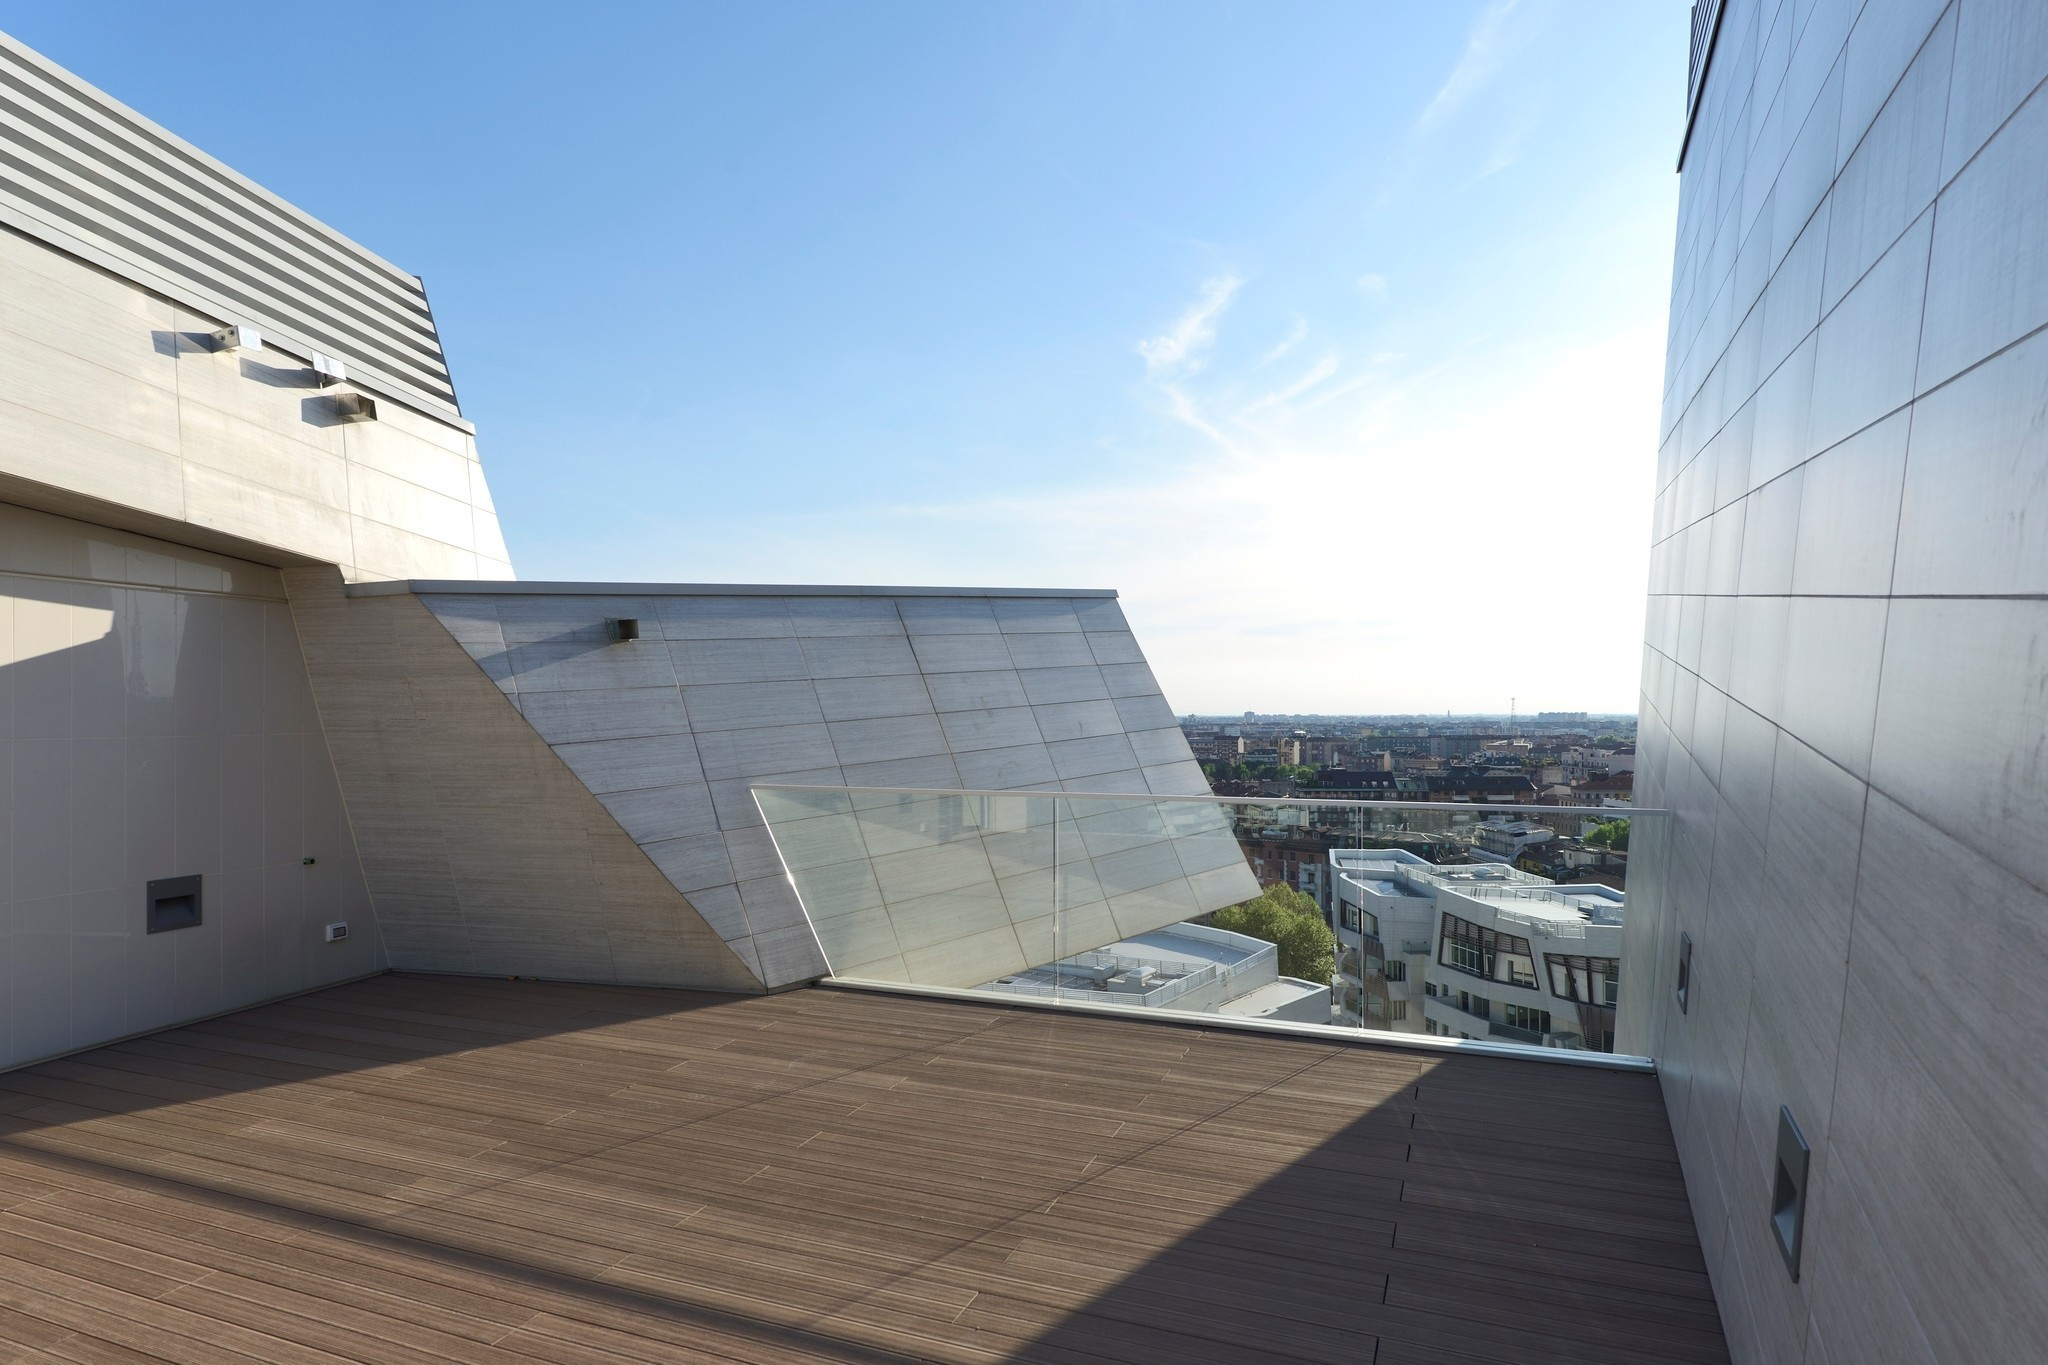 Apartment for sale in Italy, Milan with amazing terrace